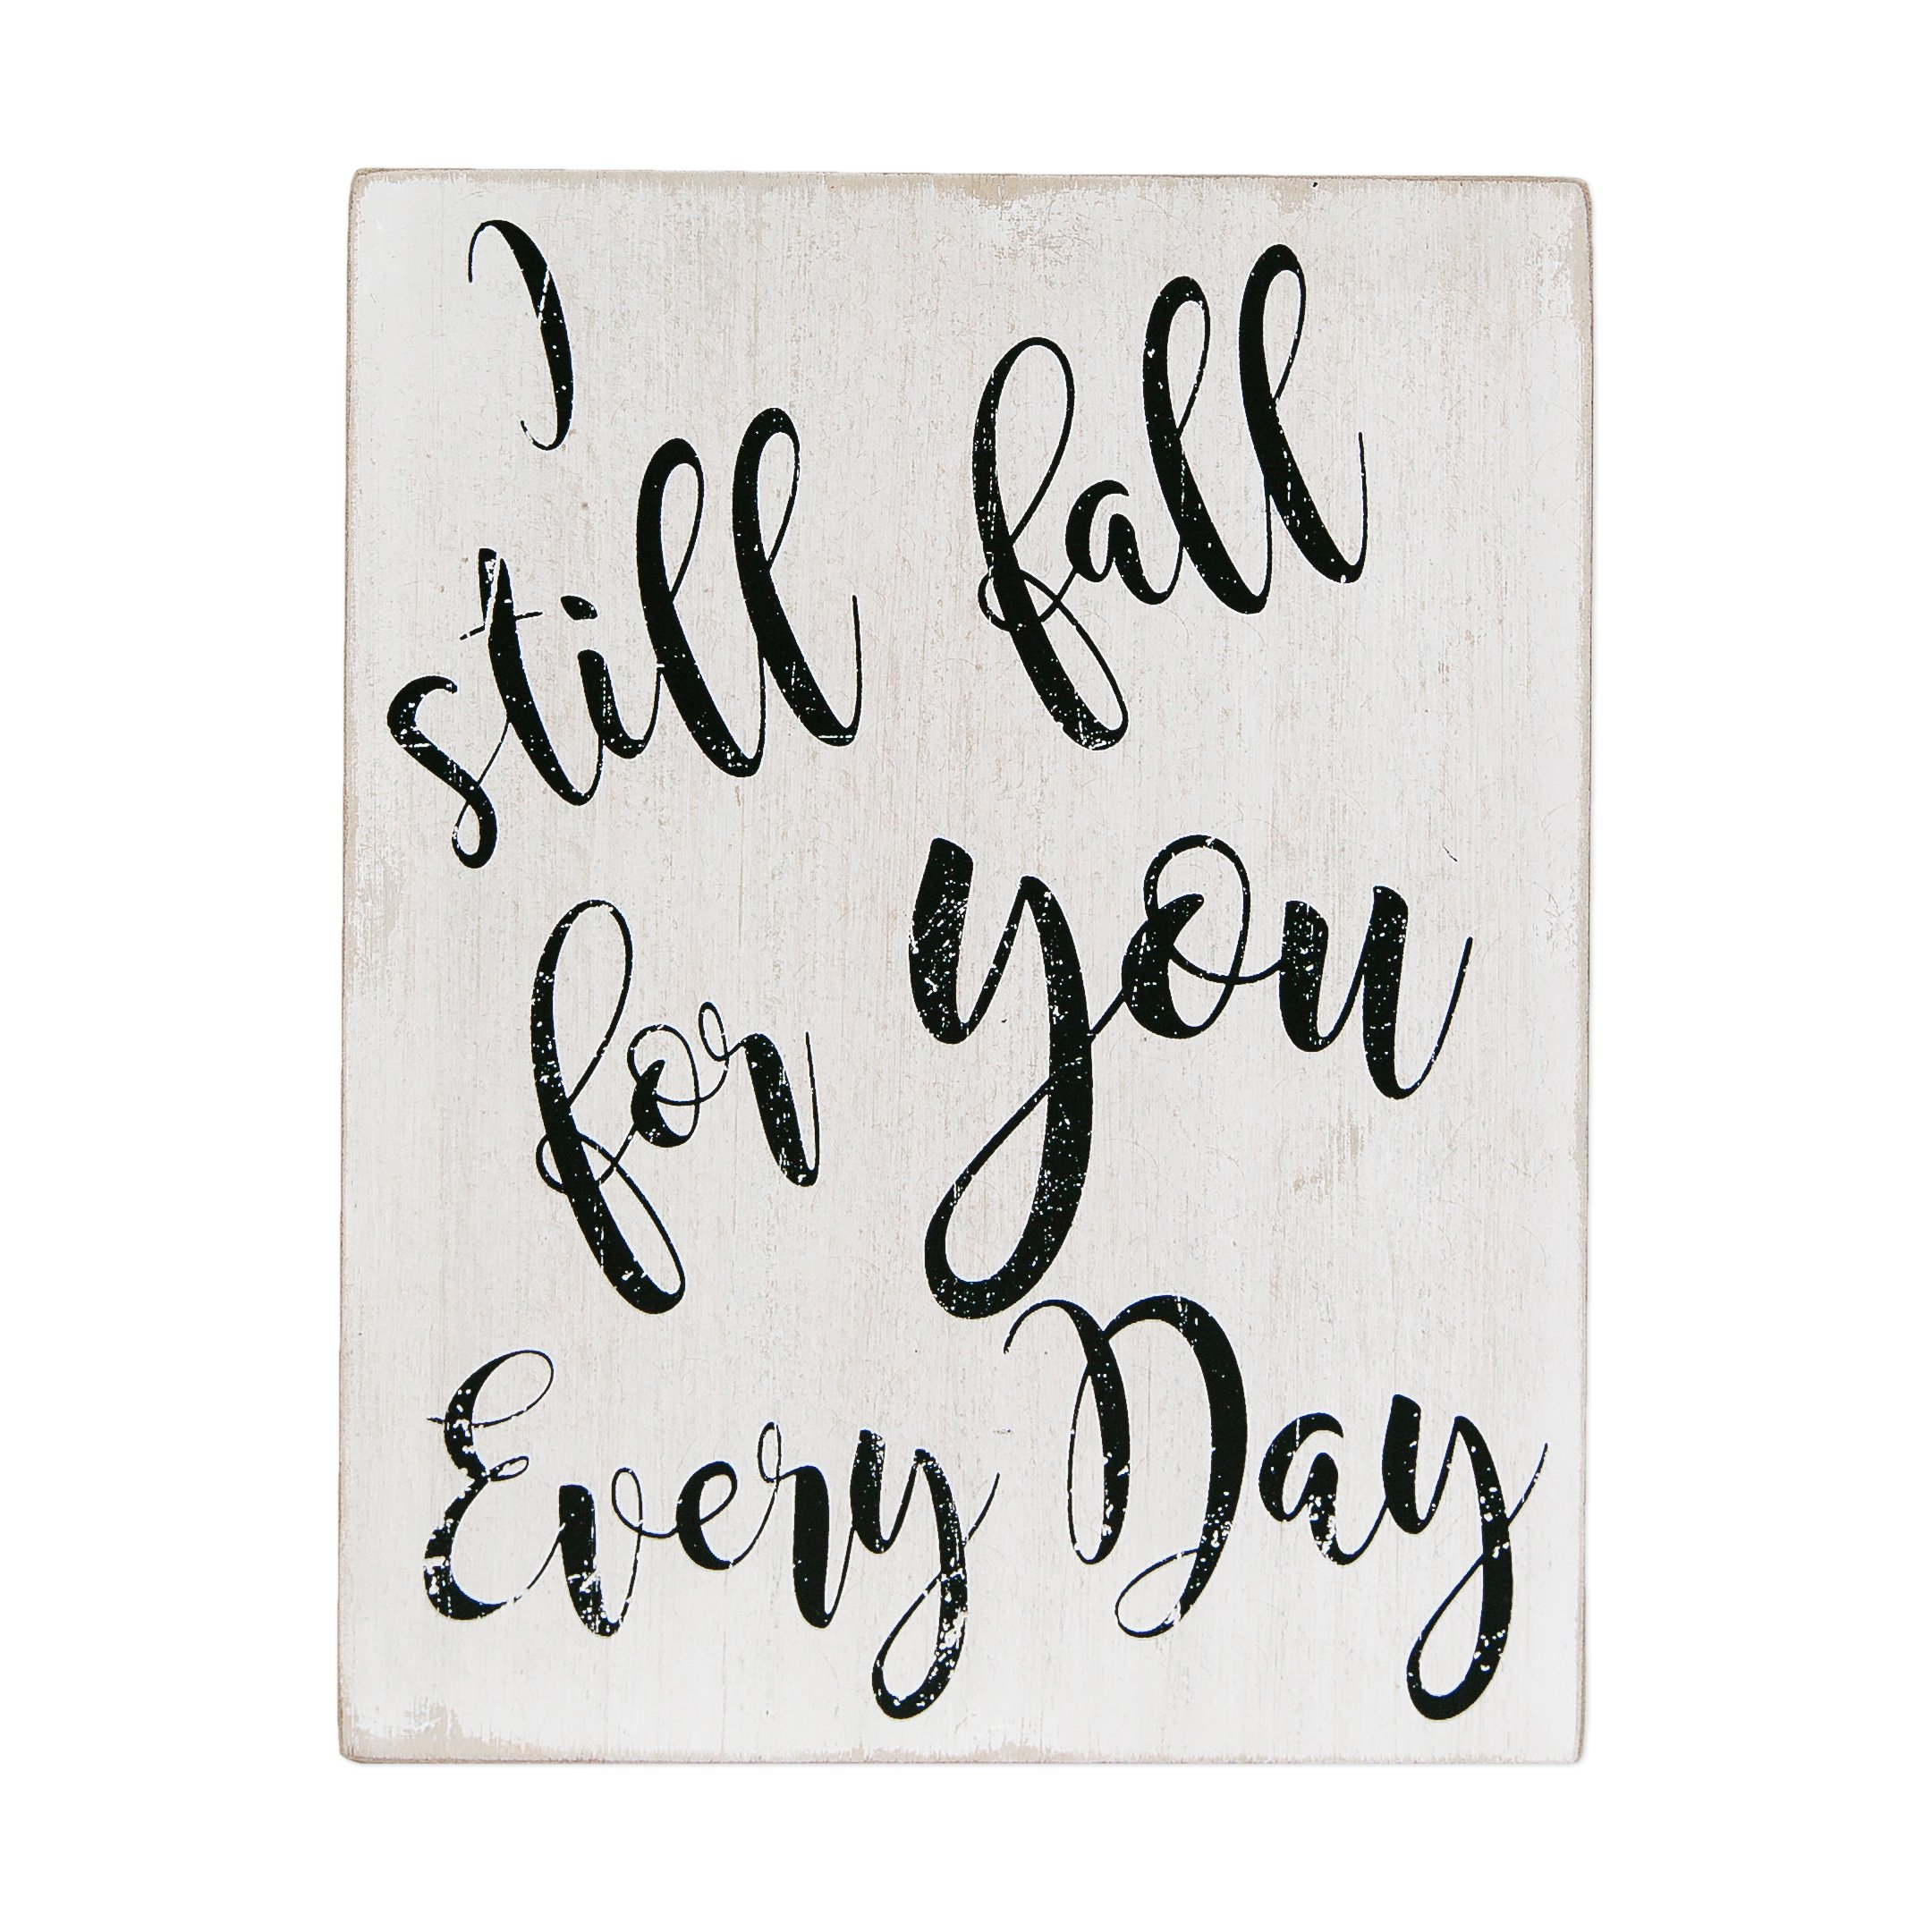 I Still Fall for You Every Day Black White 9 x 7 Inch Wood Hanging Wall Plaque Sign by Adams and Co